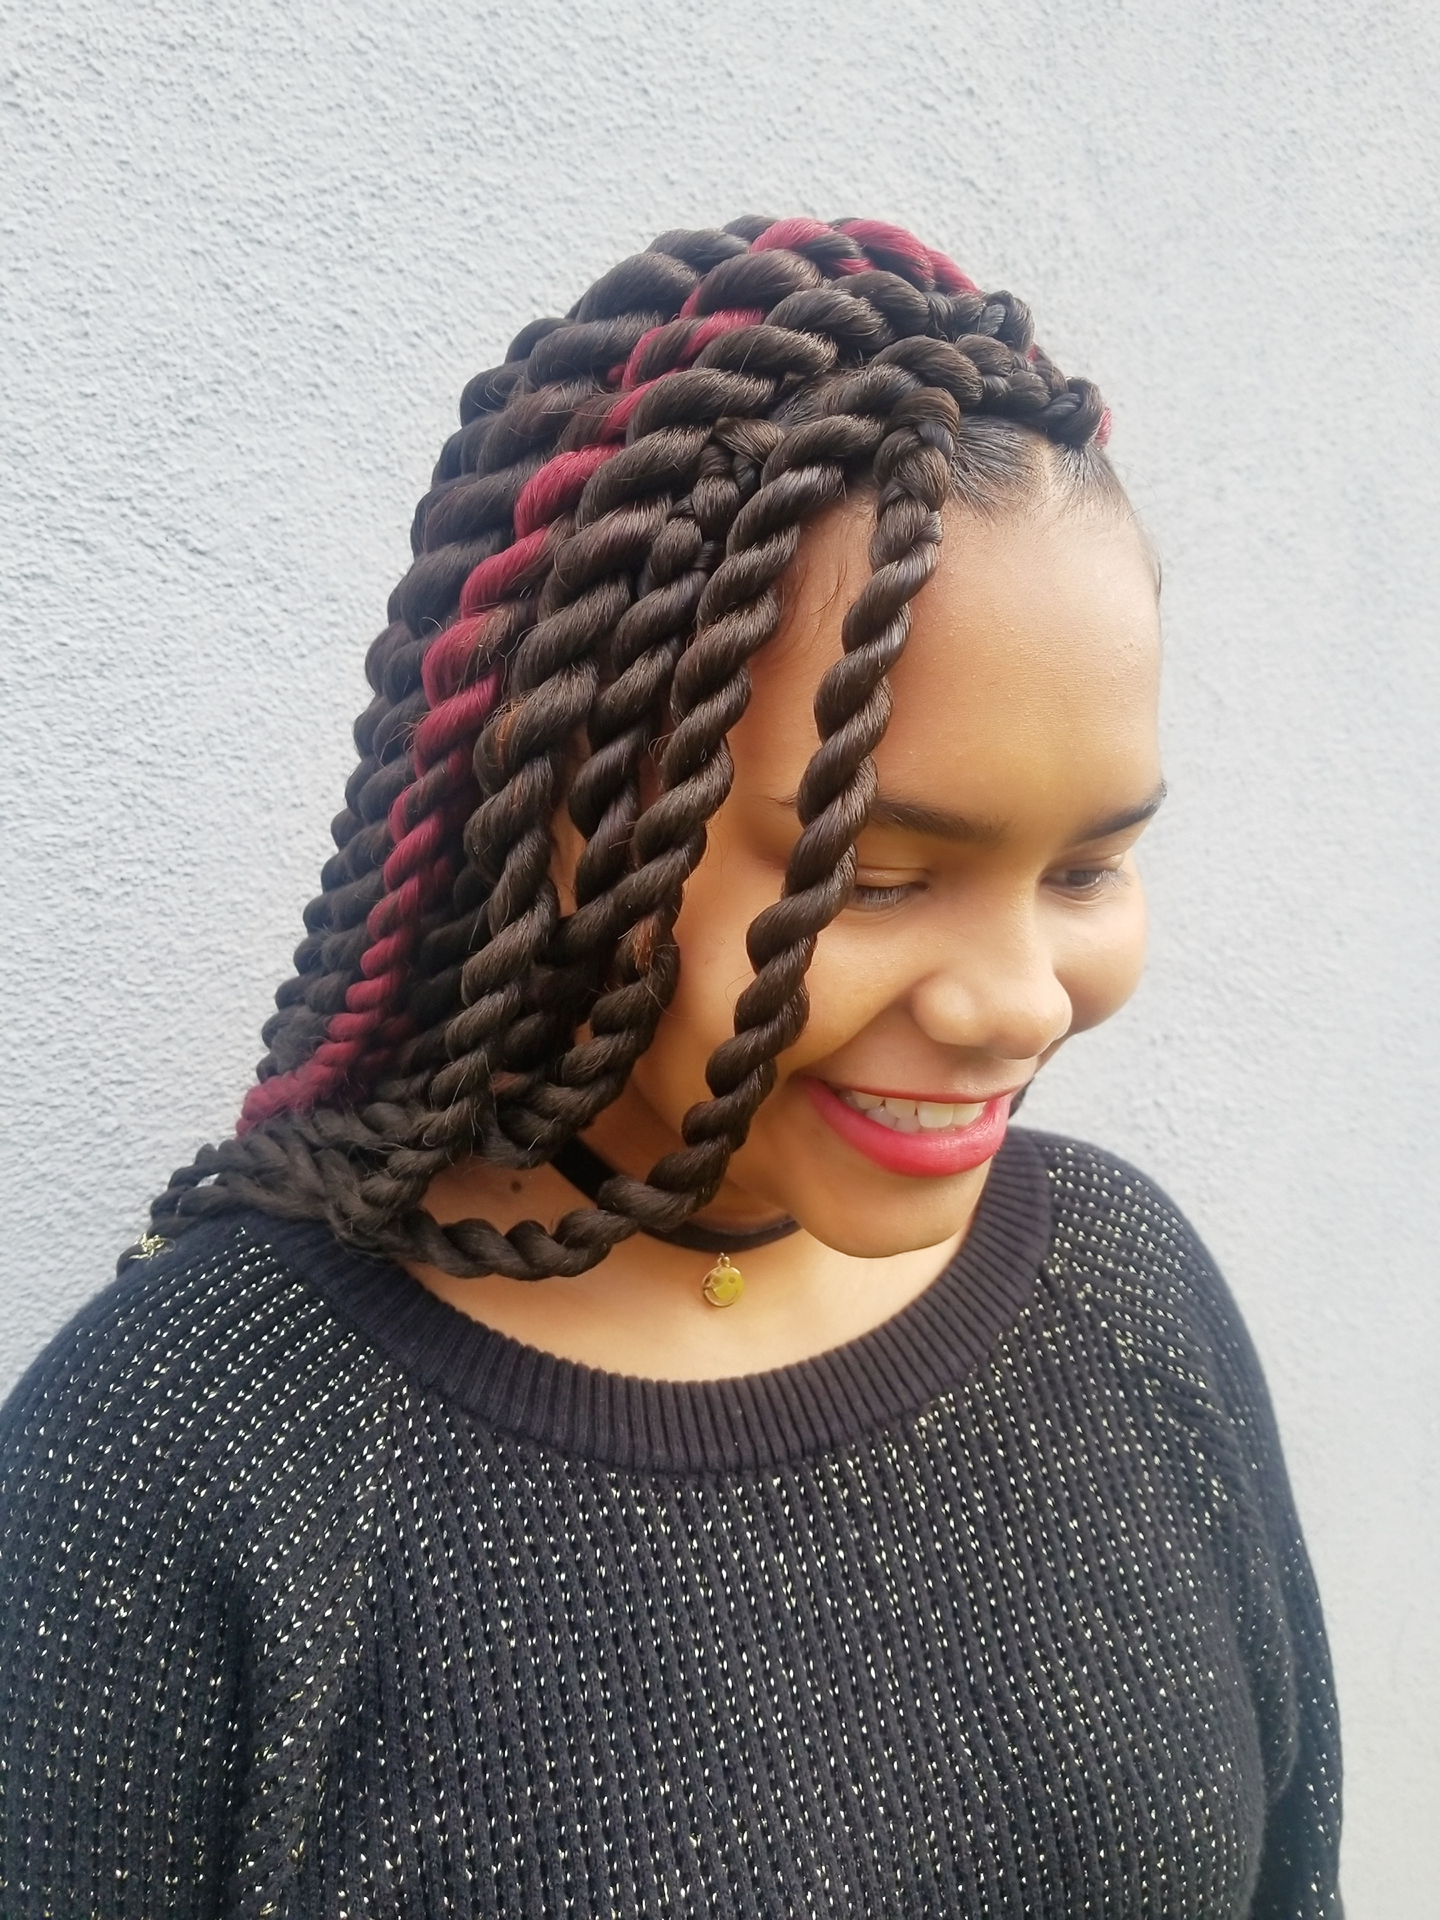 Widely Used Dookie Braid Bump Hairstyles In Here's Everything You Need To Know About Getting Braids (View 12 of 20)